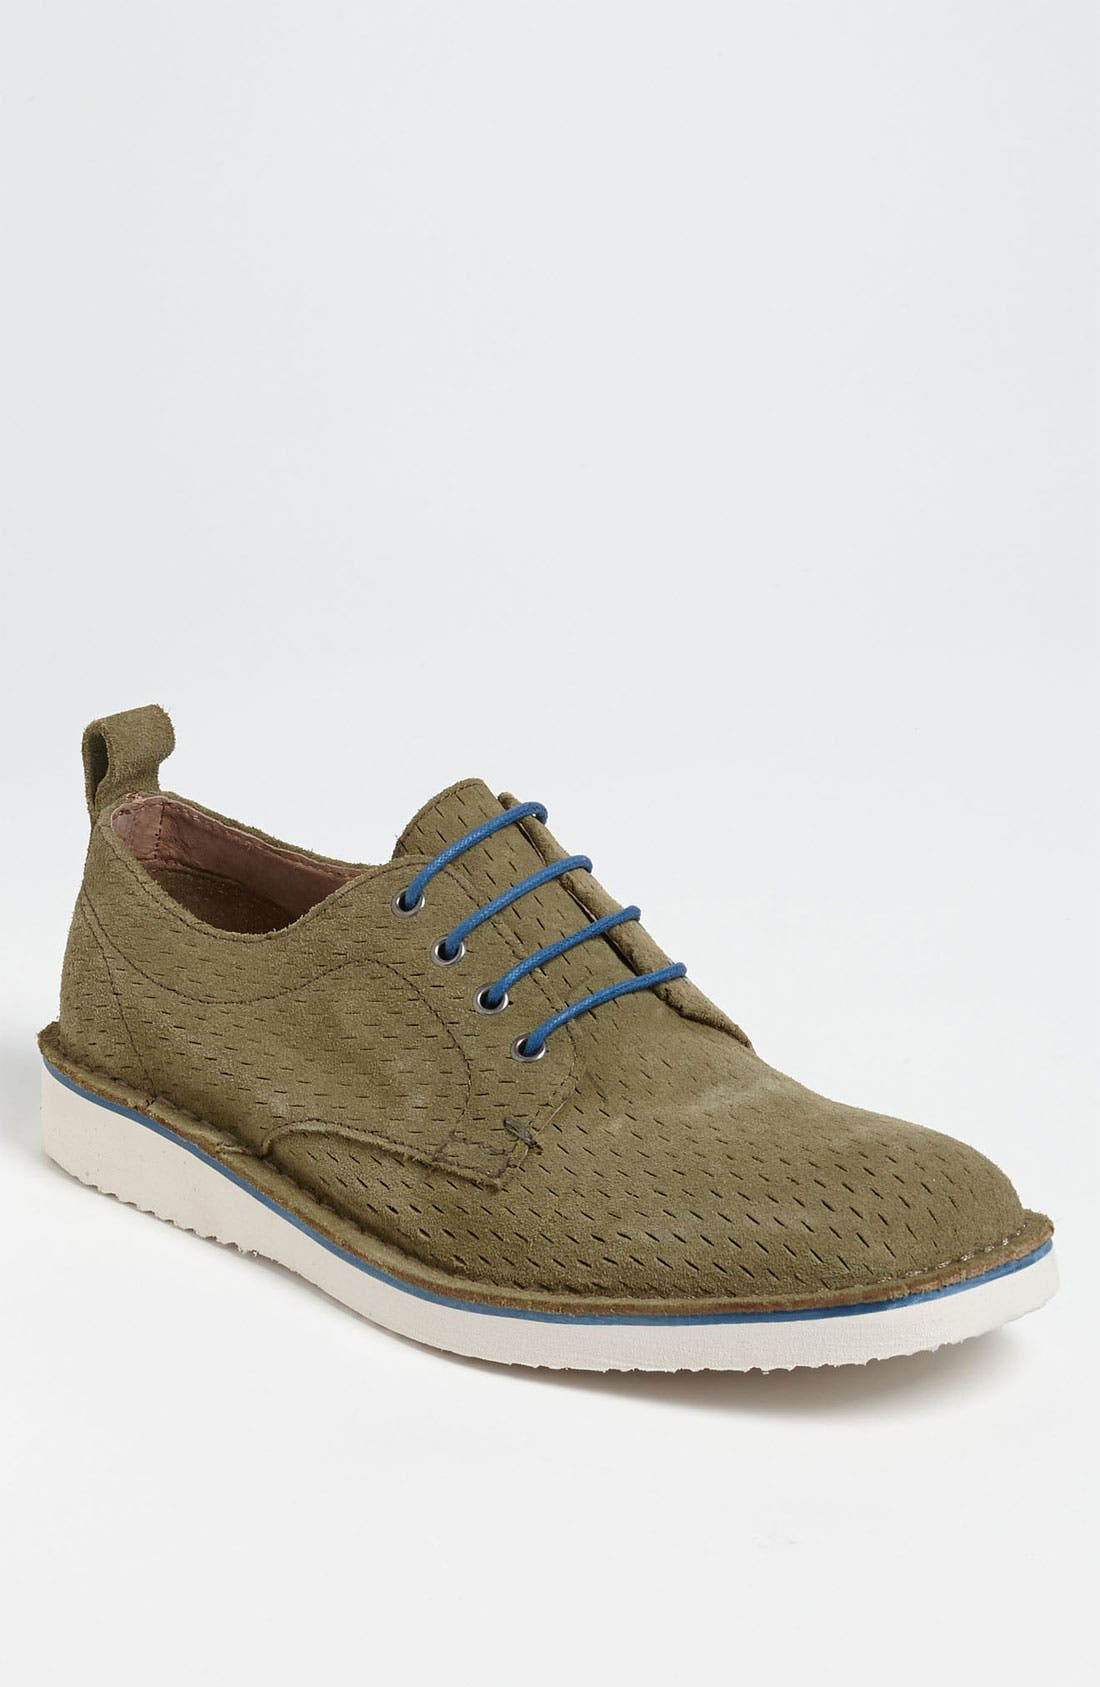 Alternate Image 1 Selected - Andrew Marc 'Baxter' Perforated Buck Shoe (Men)